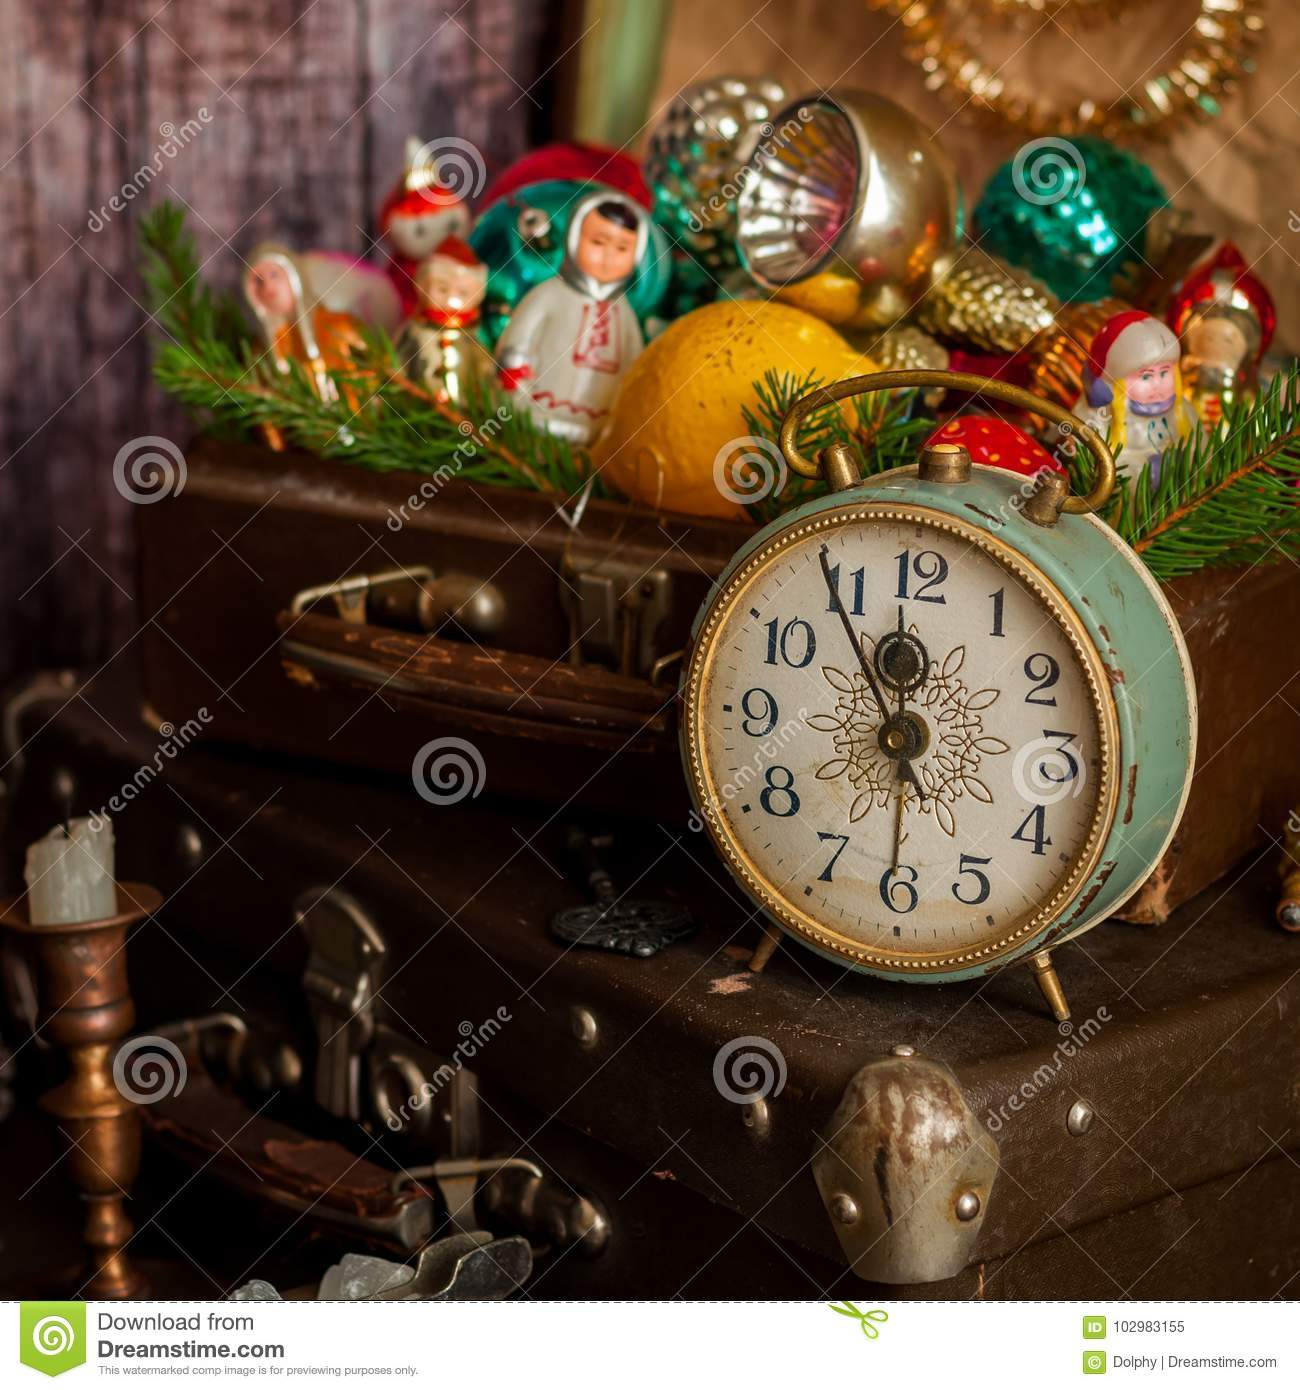 retro alarm clock vintage leather suitcases old fashioned christmas tree decorations square